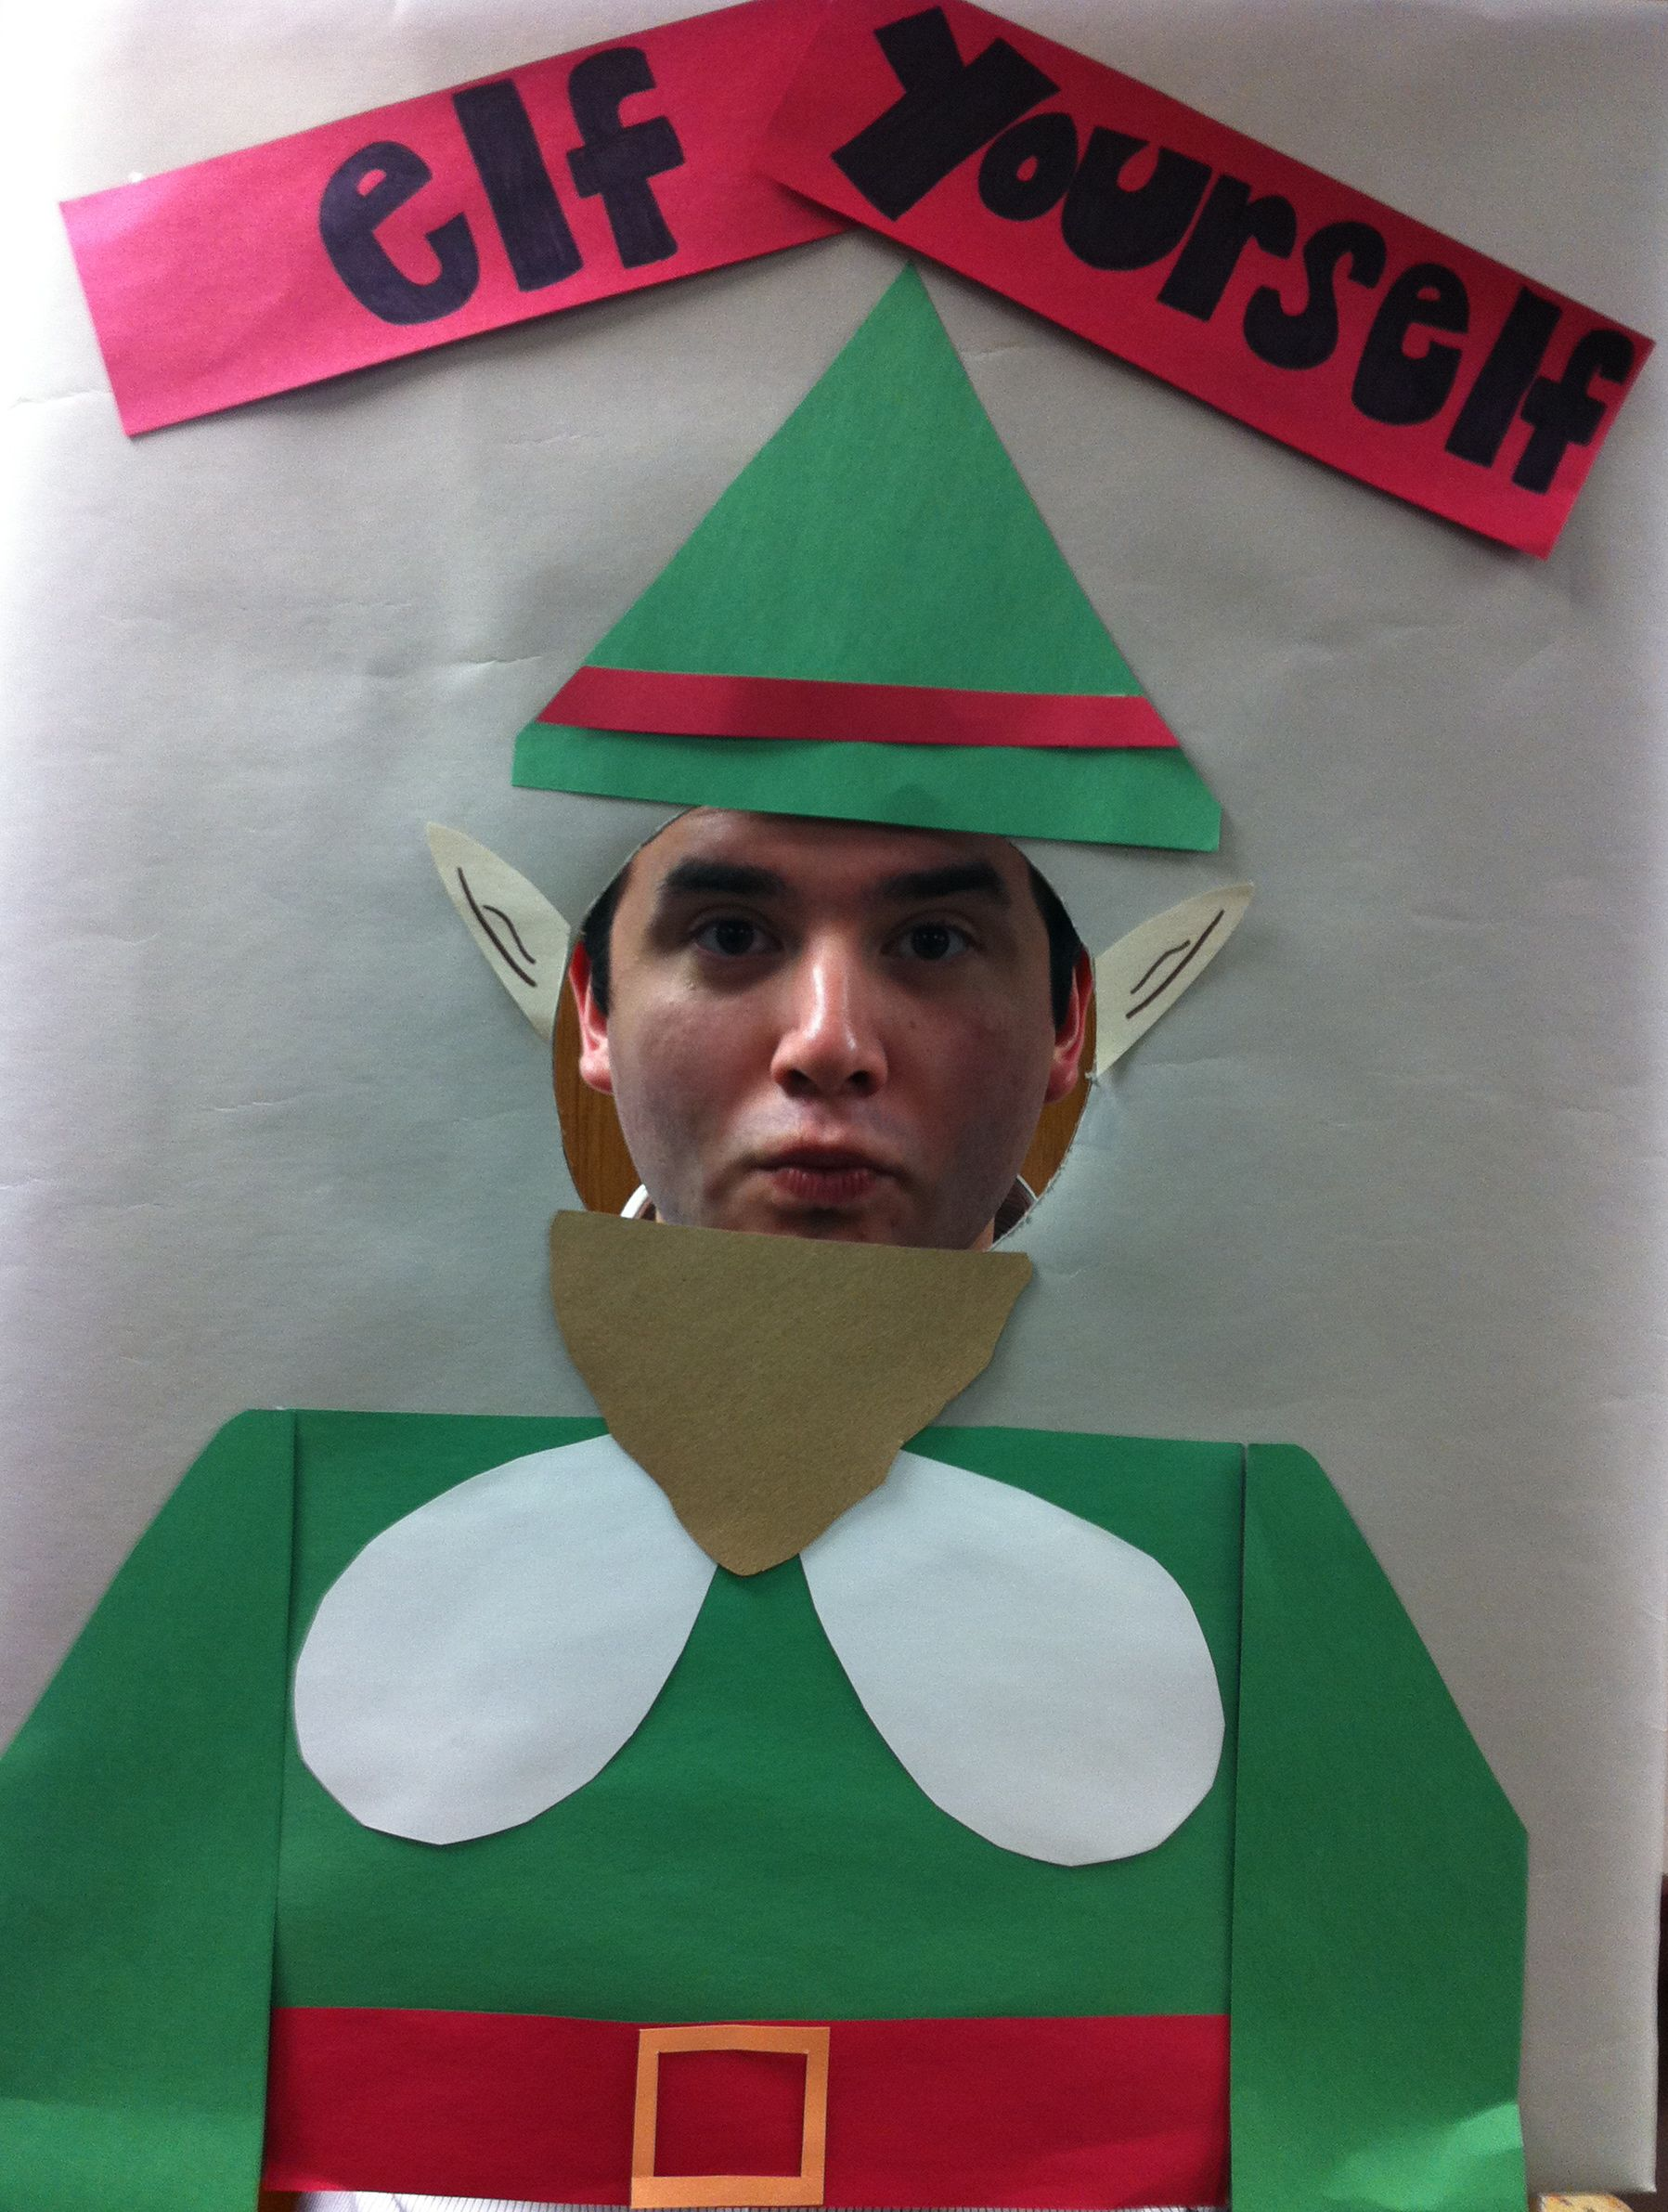 office christmas decorating. Last Christmas - Made An Elf Yourself For Our Office Decorating. Cut A Hole Decorating N